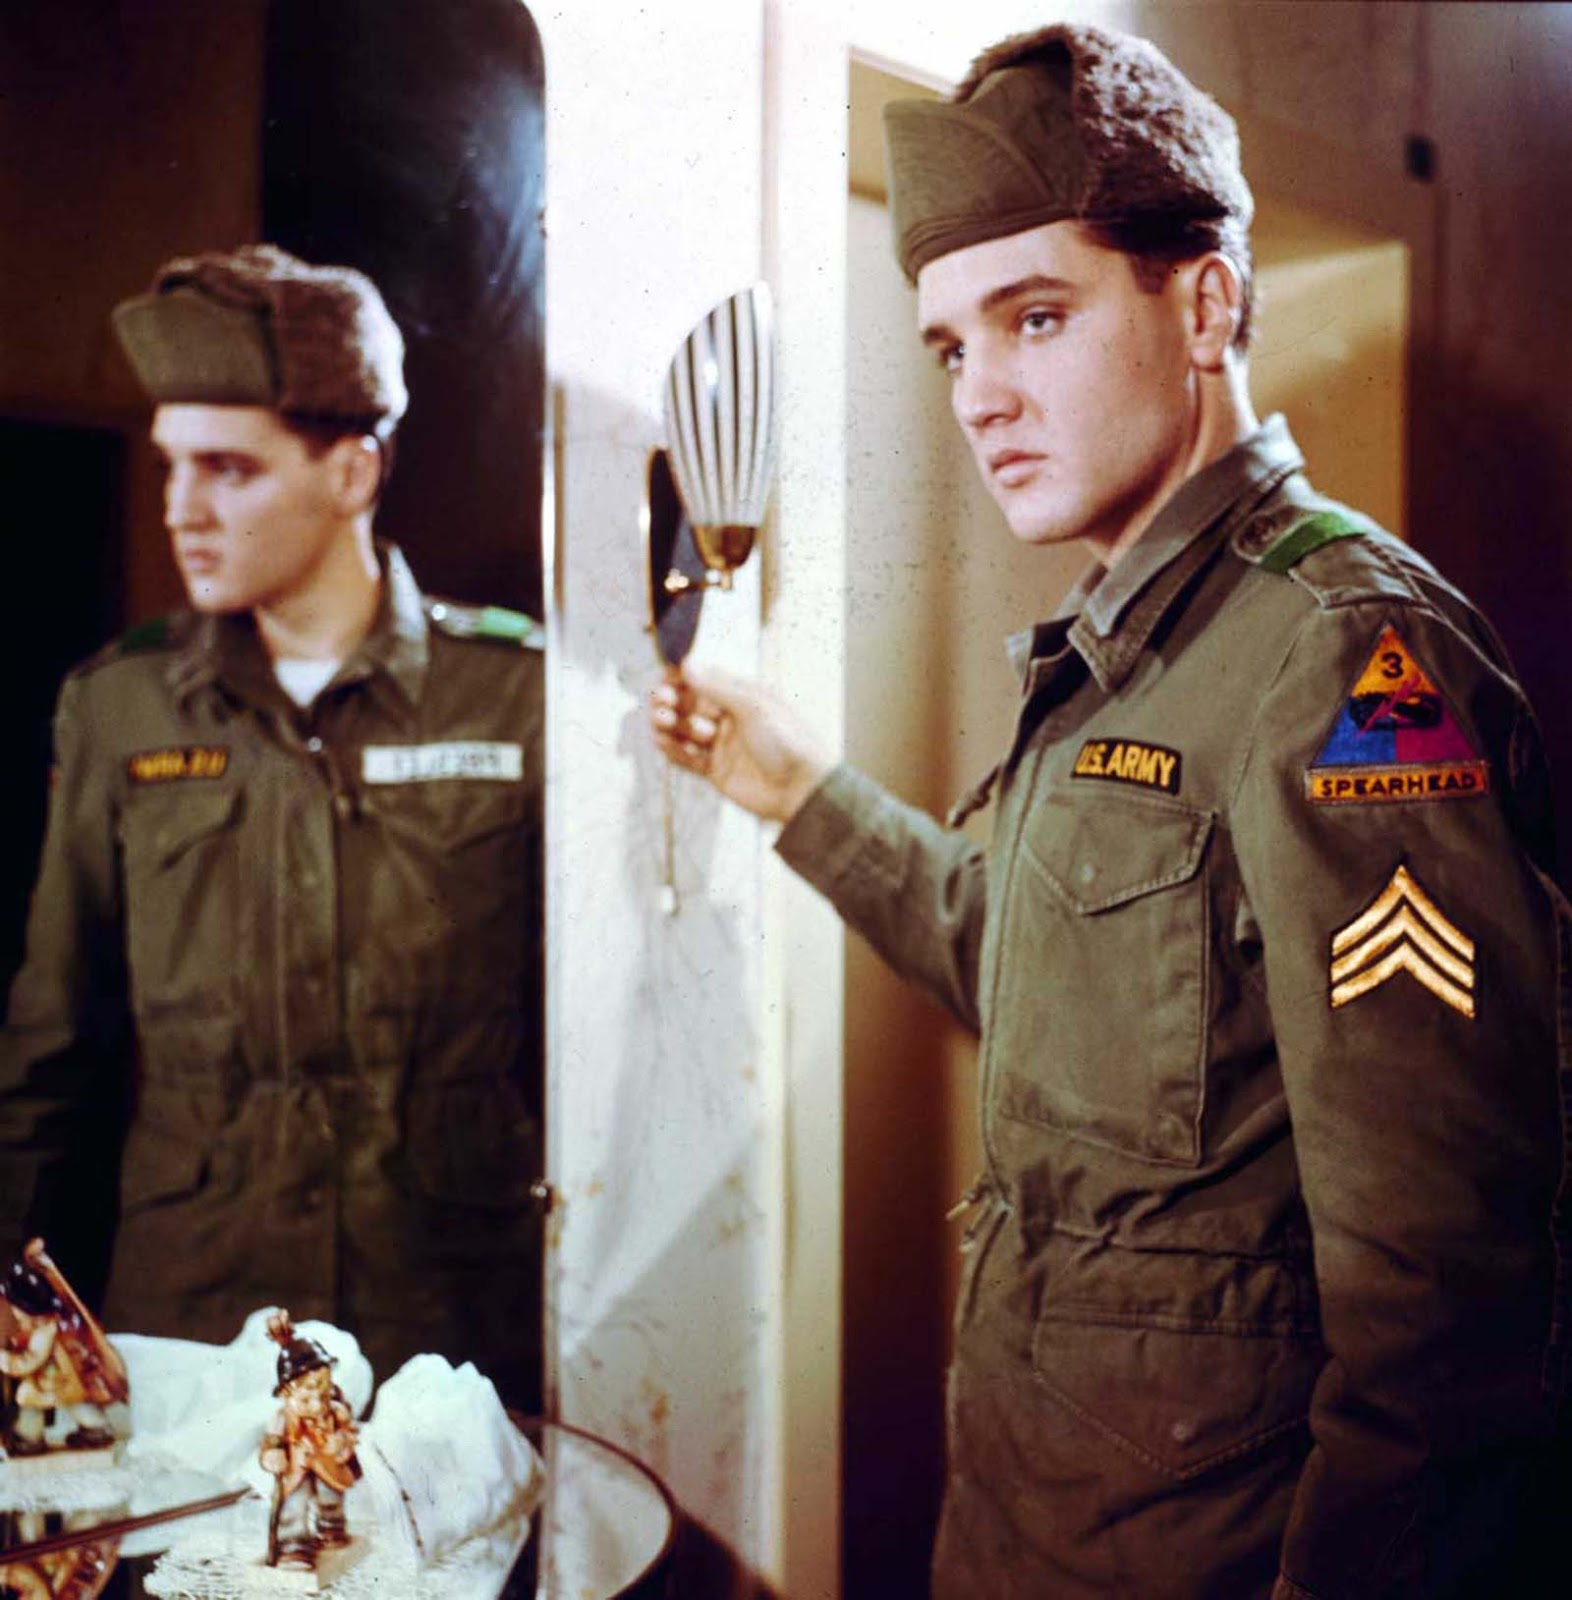 Elvis poses for a portrait next to a mirror during his tour of duty in Germany.